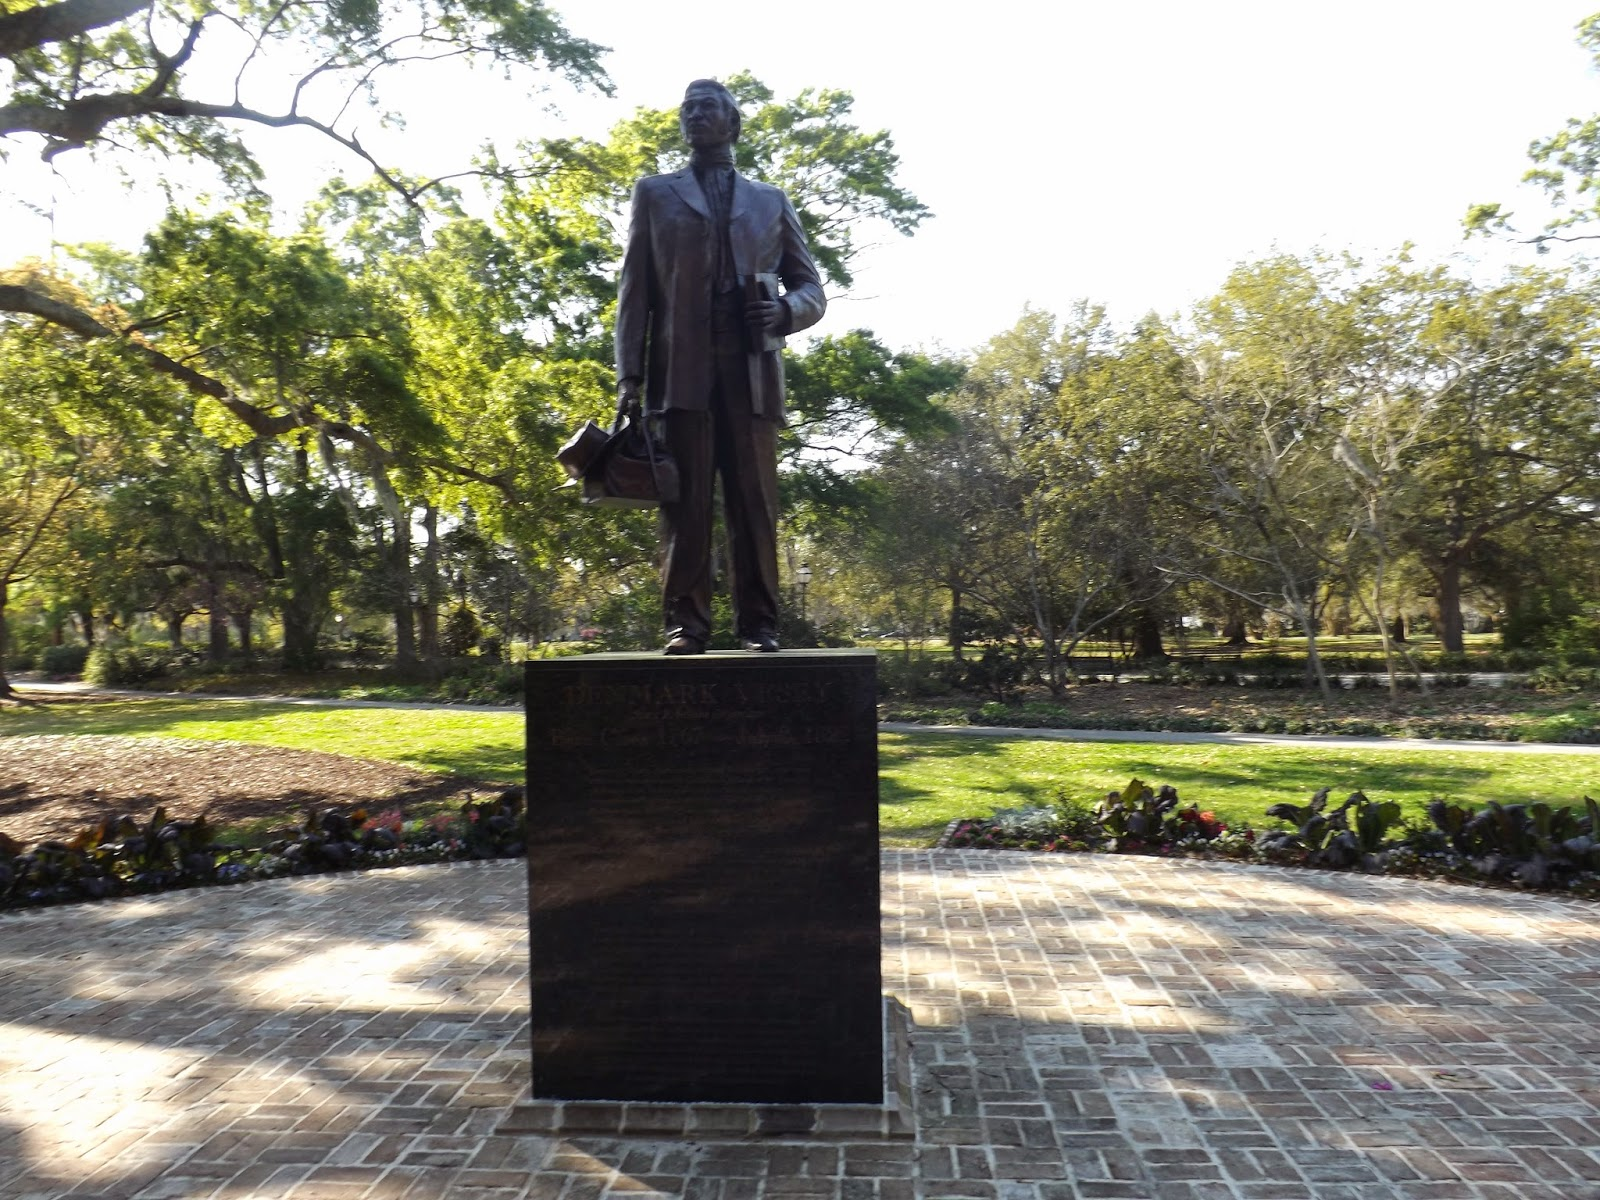 The monument was dedicated after 18 years of deliberation and fundraising by a local committee led by Charleston city councilman Henry Darby